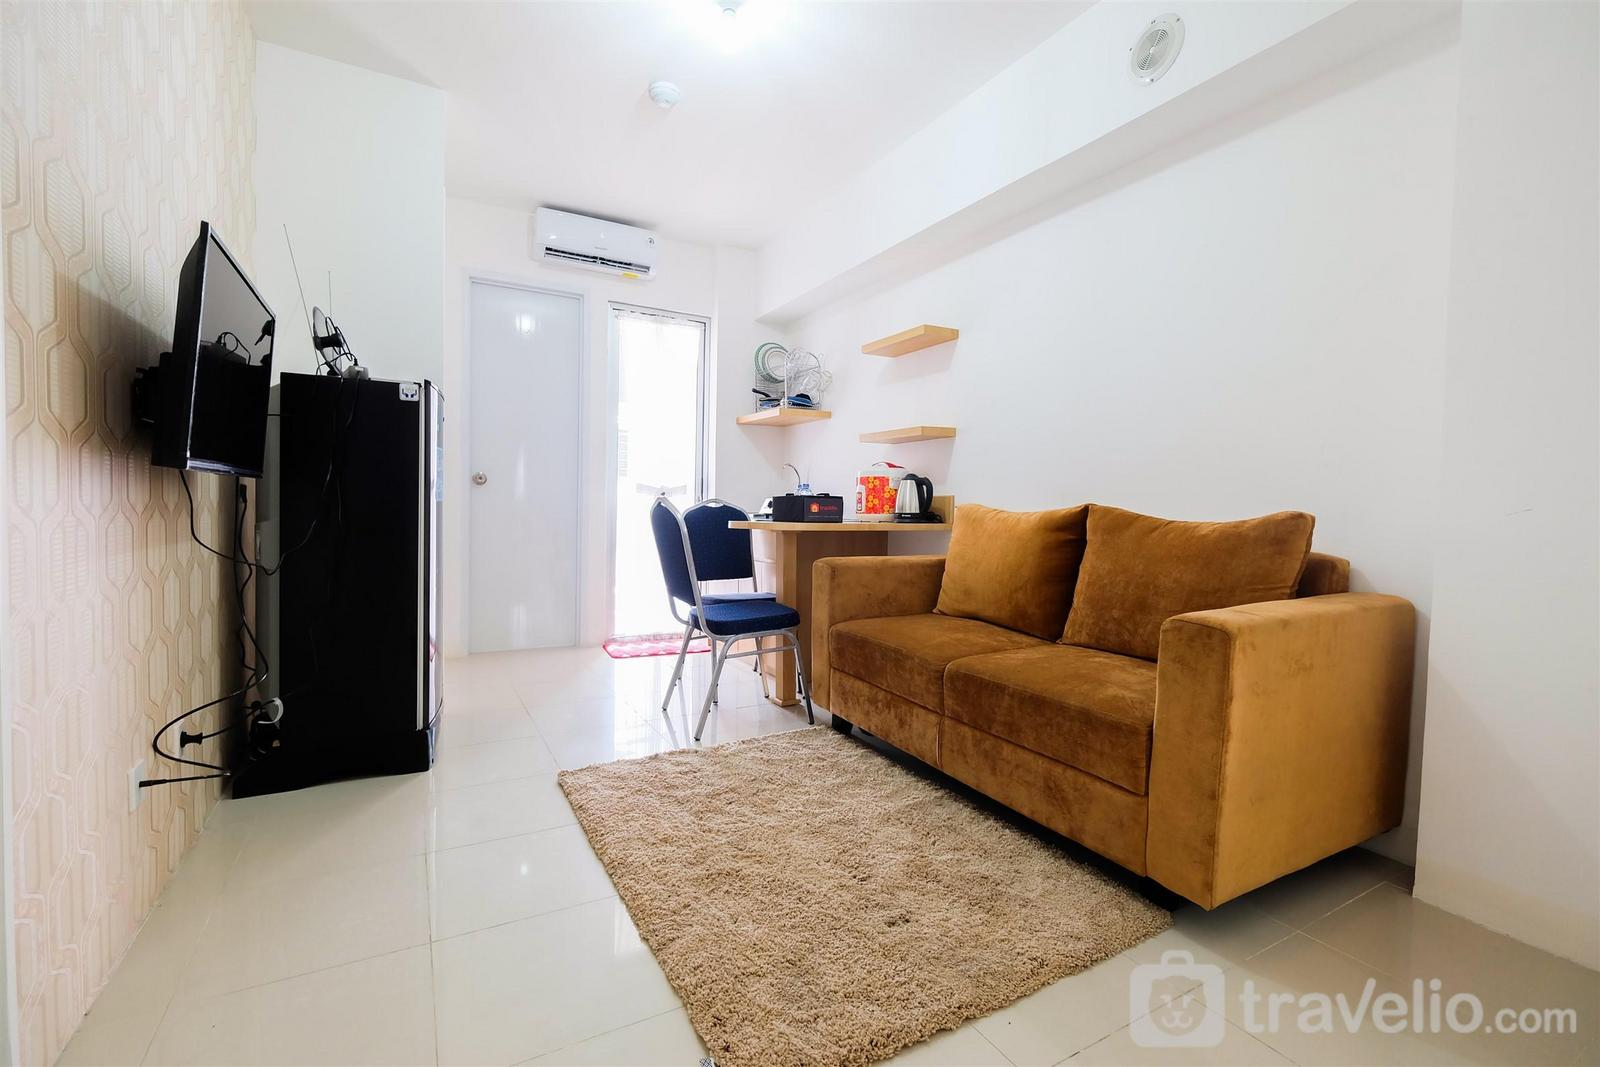 Bassura City Cipinang - Cozy 2BR Bassura City Apartment with City View By Travelio